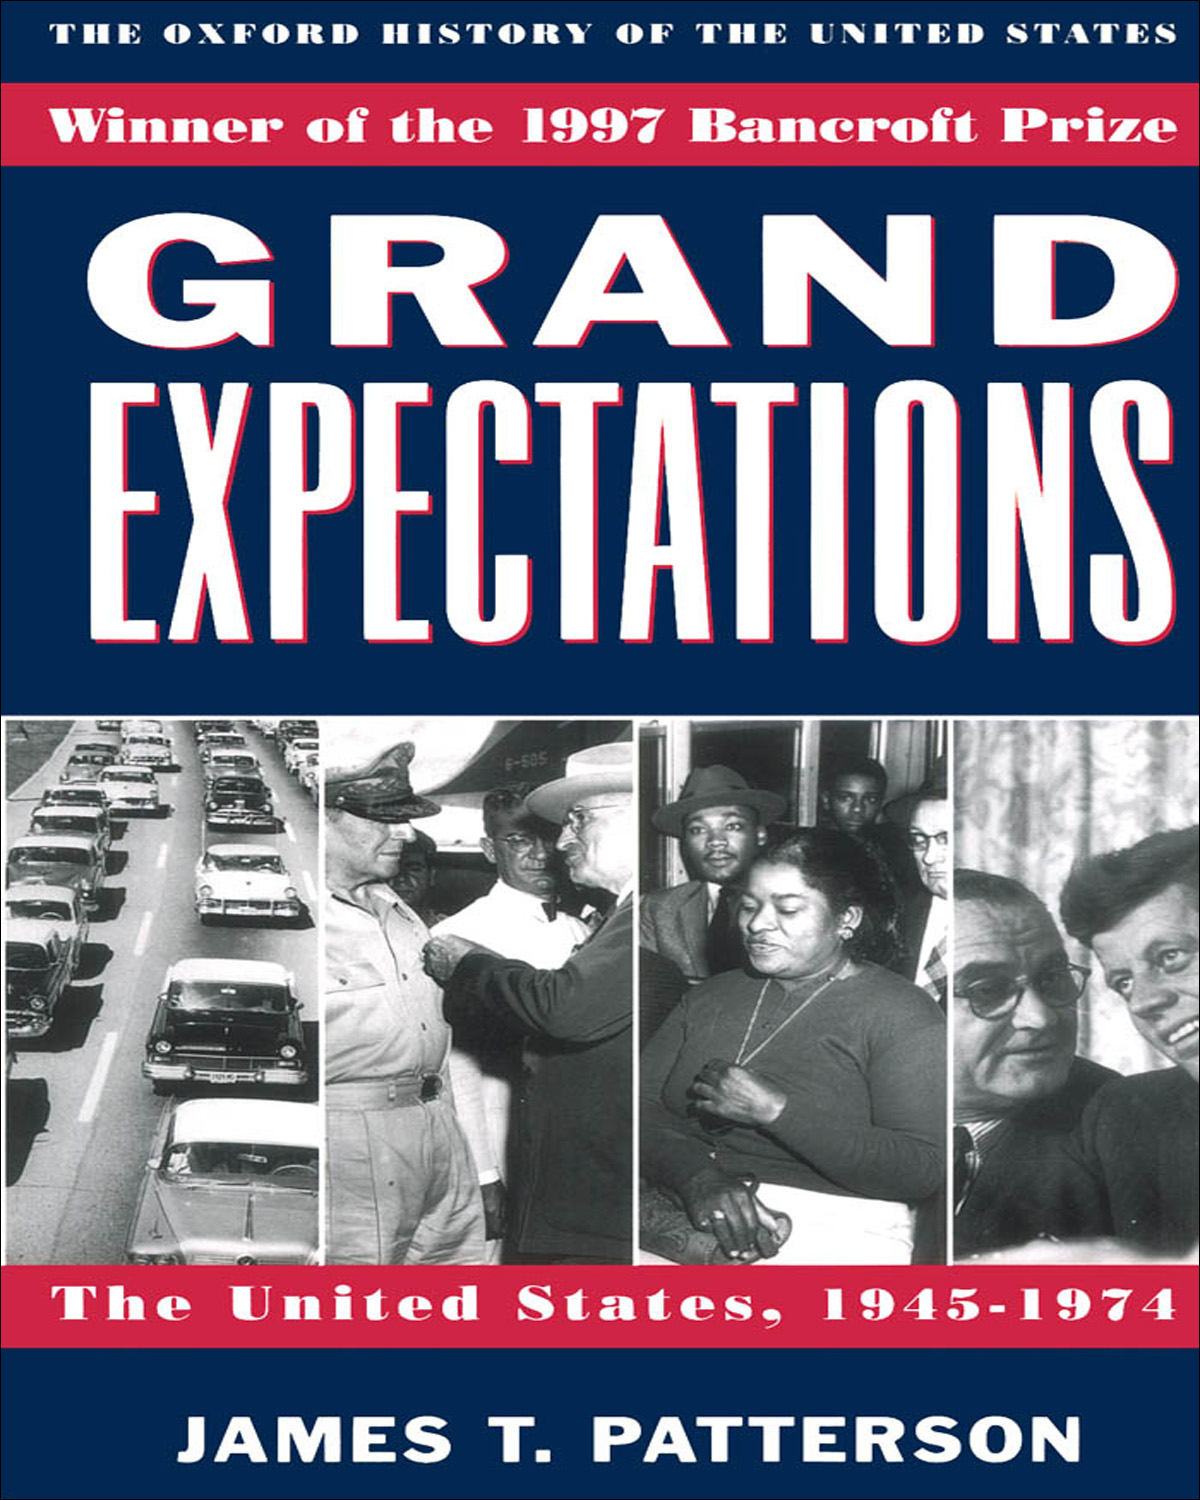 Grand Expectations:The United States, 1945-1974  By: James T. Patterson